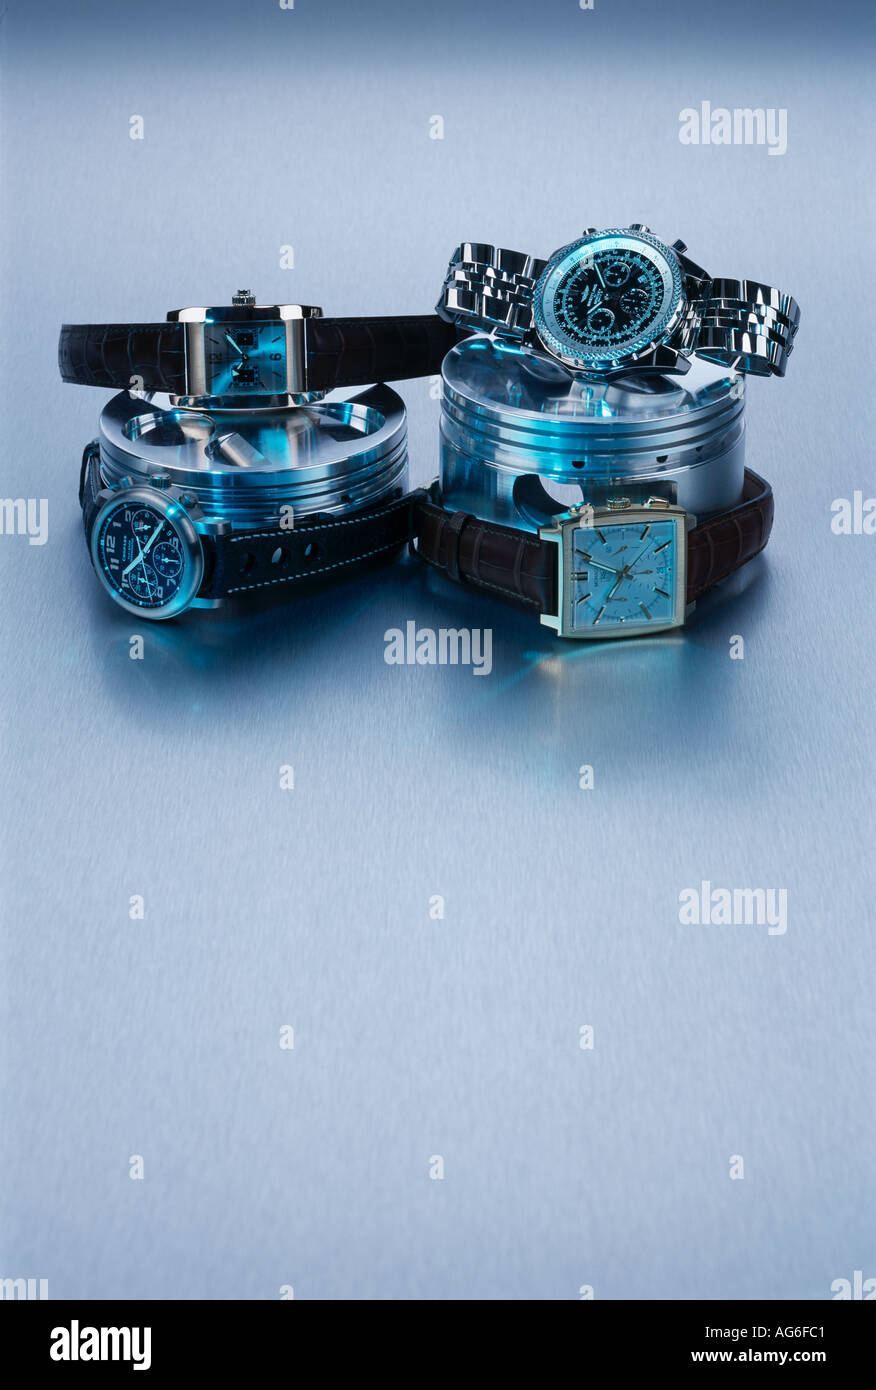 Watches on car piston heads blue lit aluminium backround Stock Photo